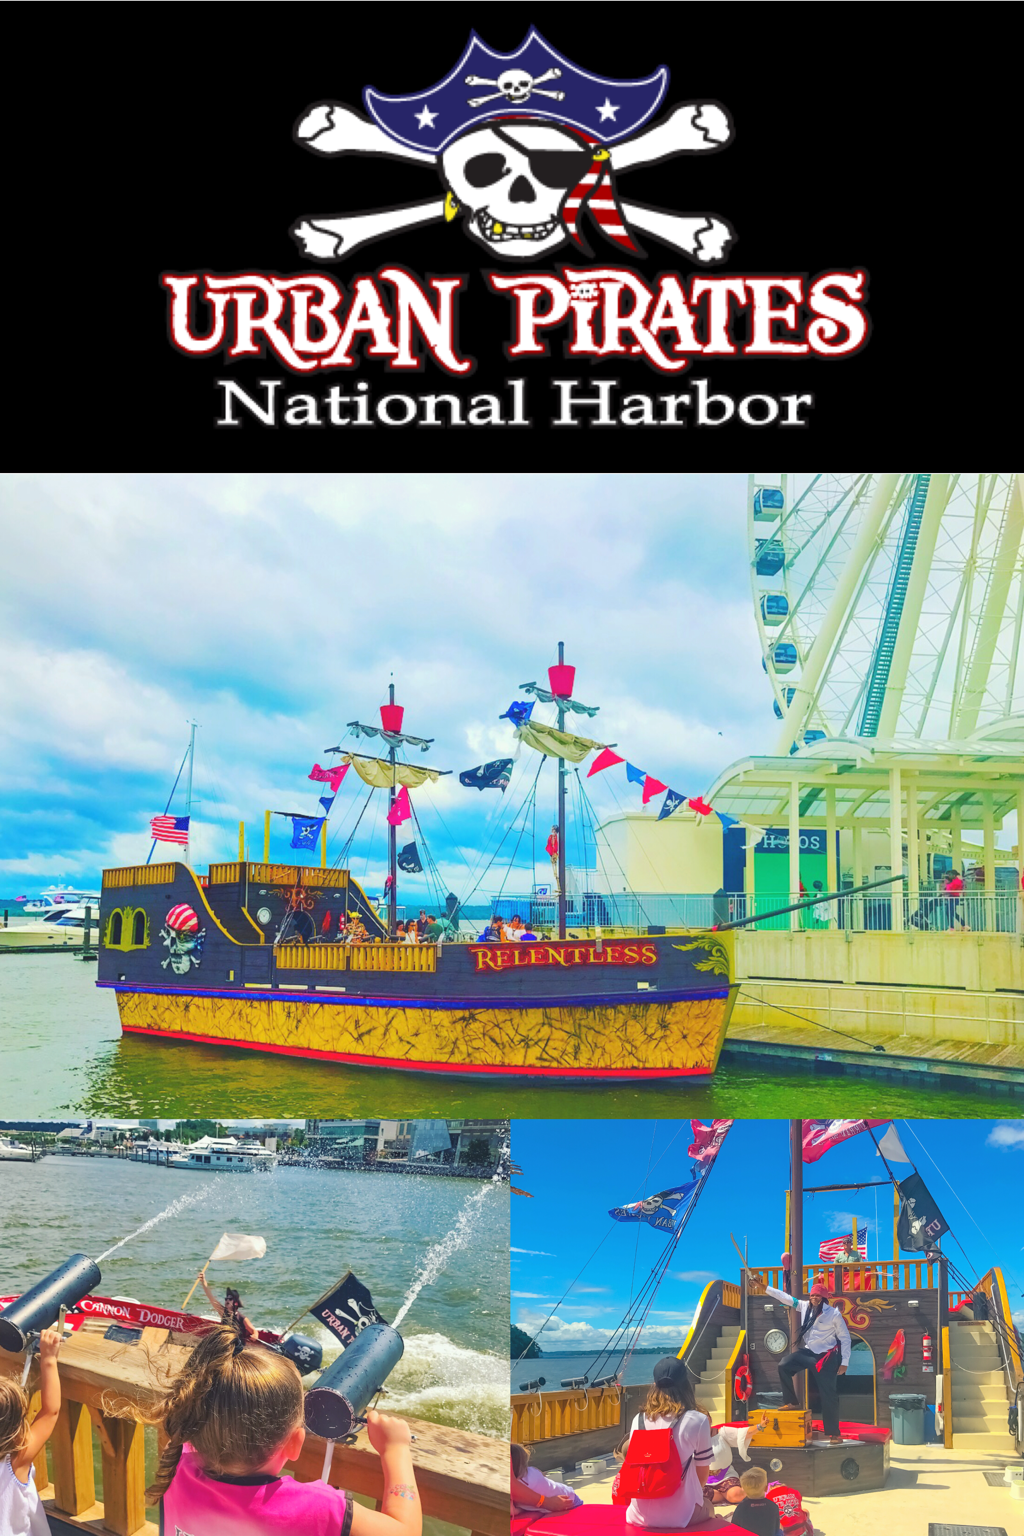 Urban Pirates National Harbor